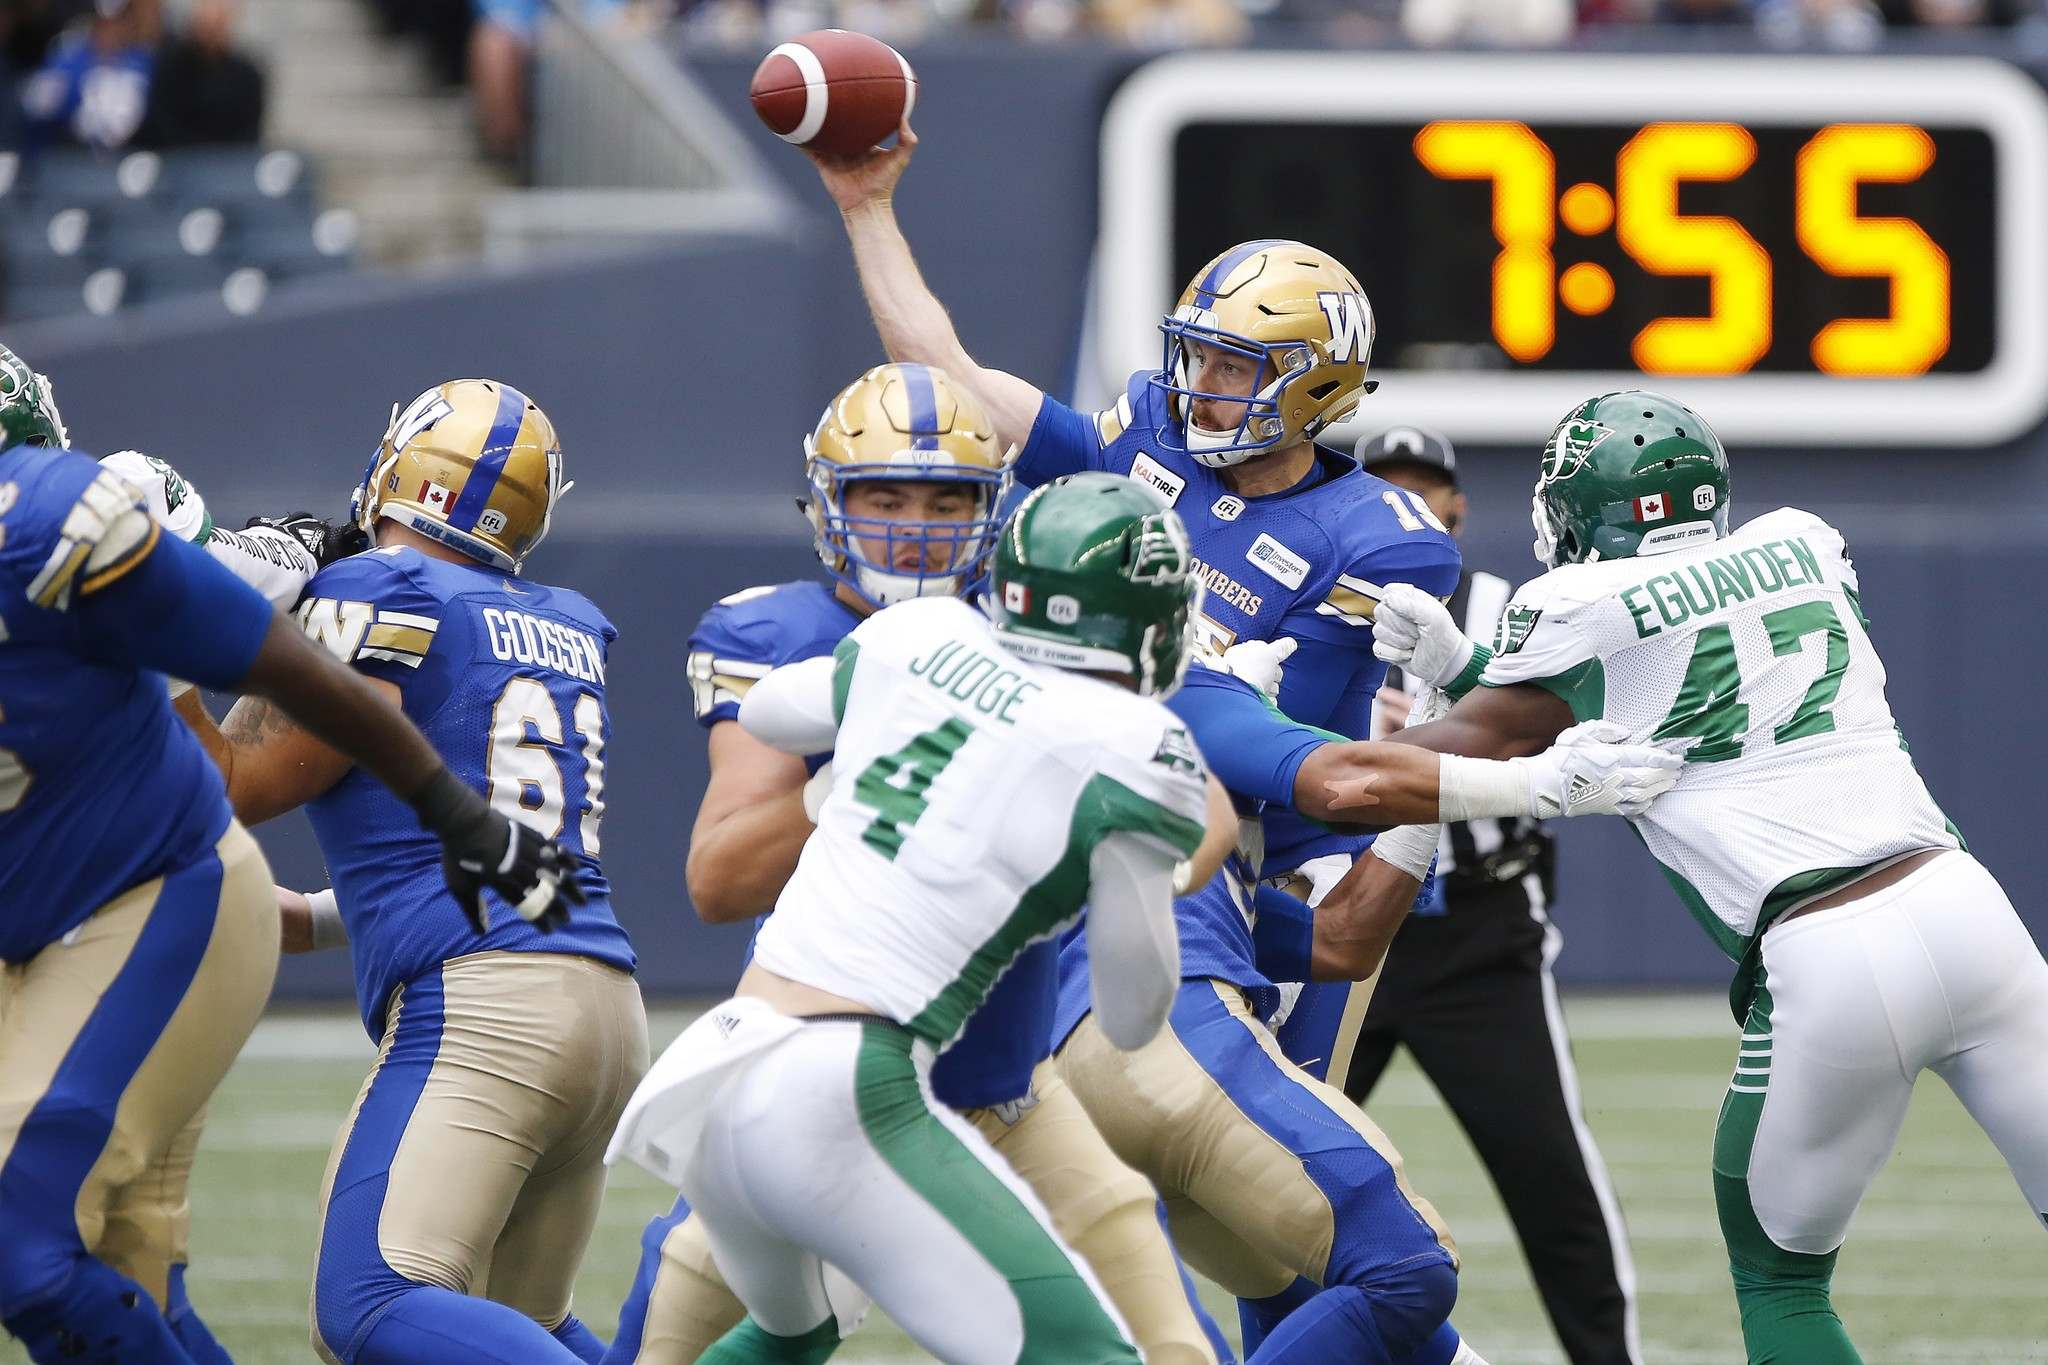 Matt Nichols went 10-for-20 for 165 yards, zero touchdowns and three interceptions against Saskatchewan Saturday. He also had two other interceptions wiped out by penalties. (John Woods / The Canadian Press)</p>